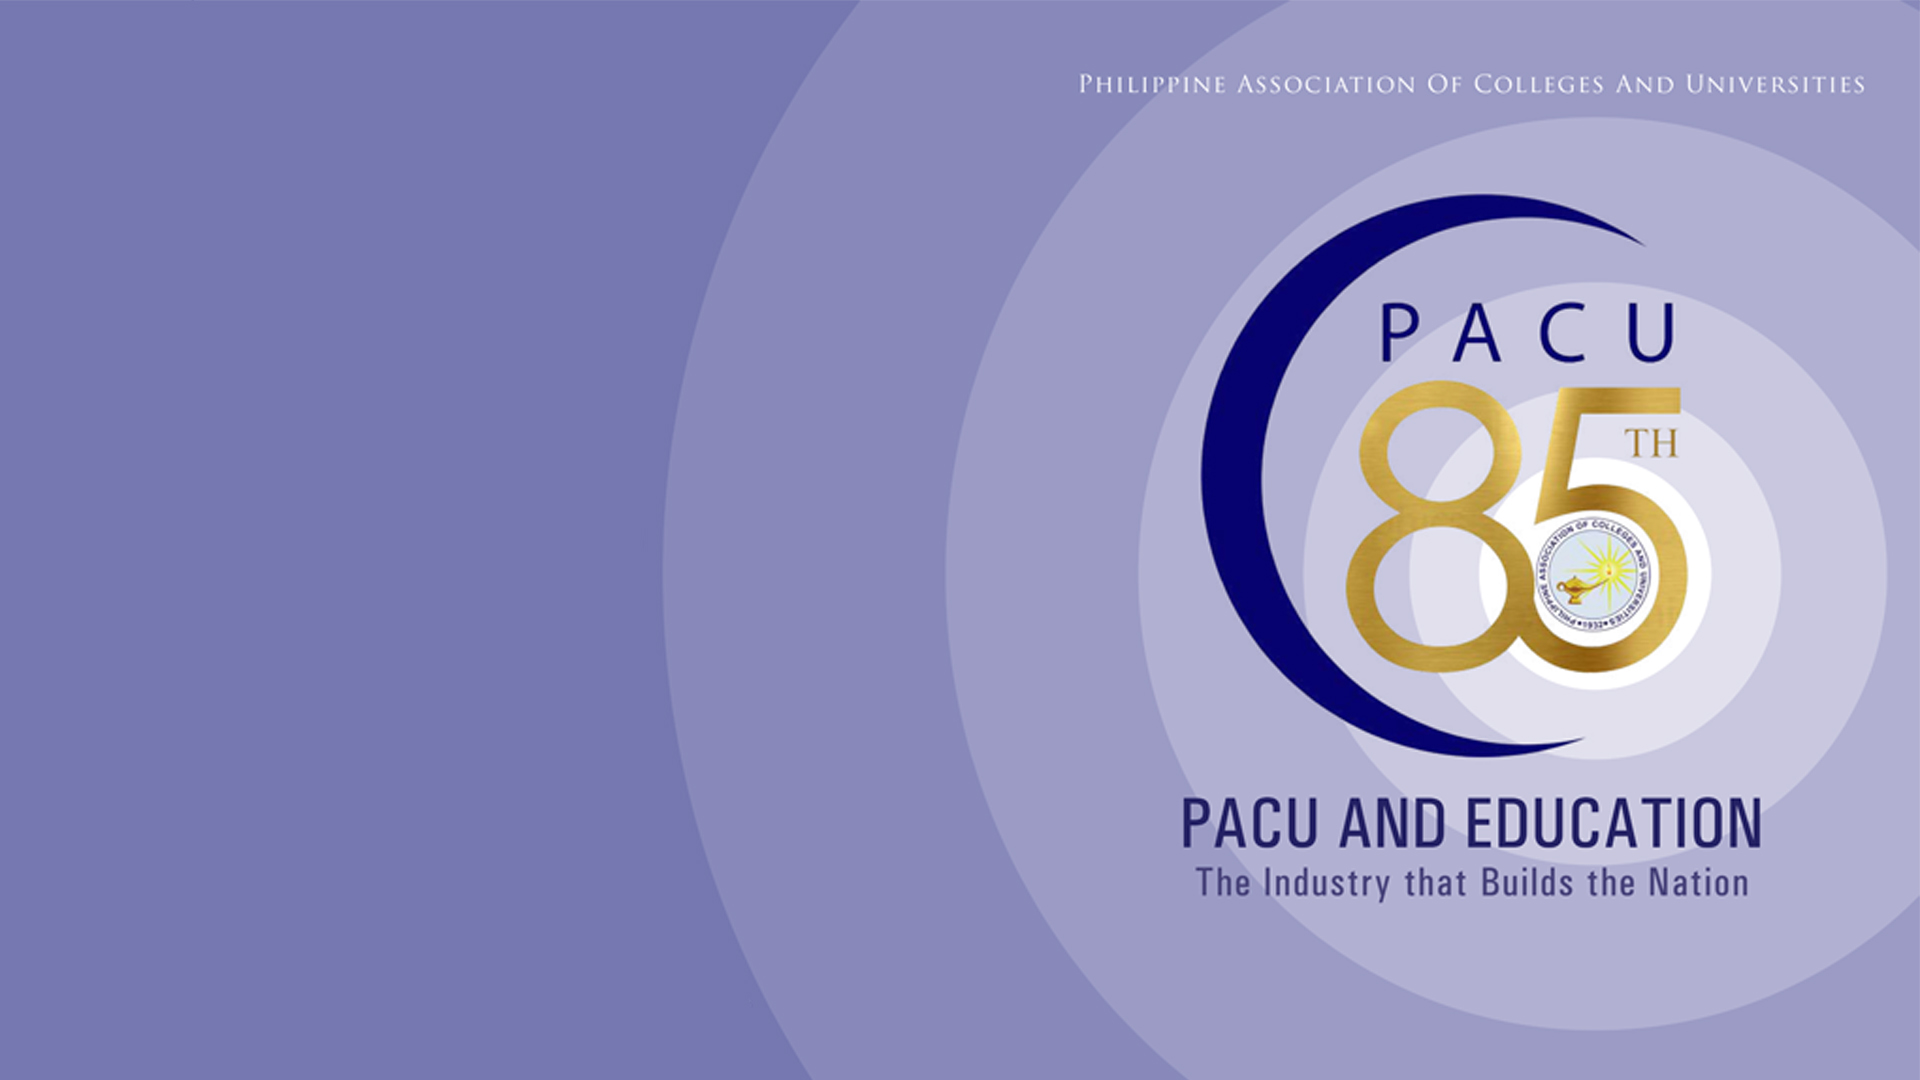 PACU's 85th Founding Anniversary